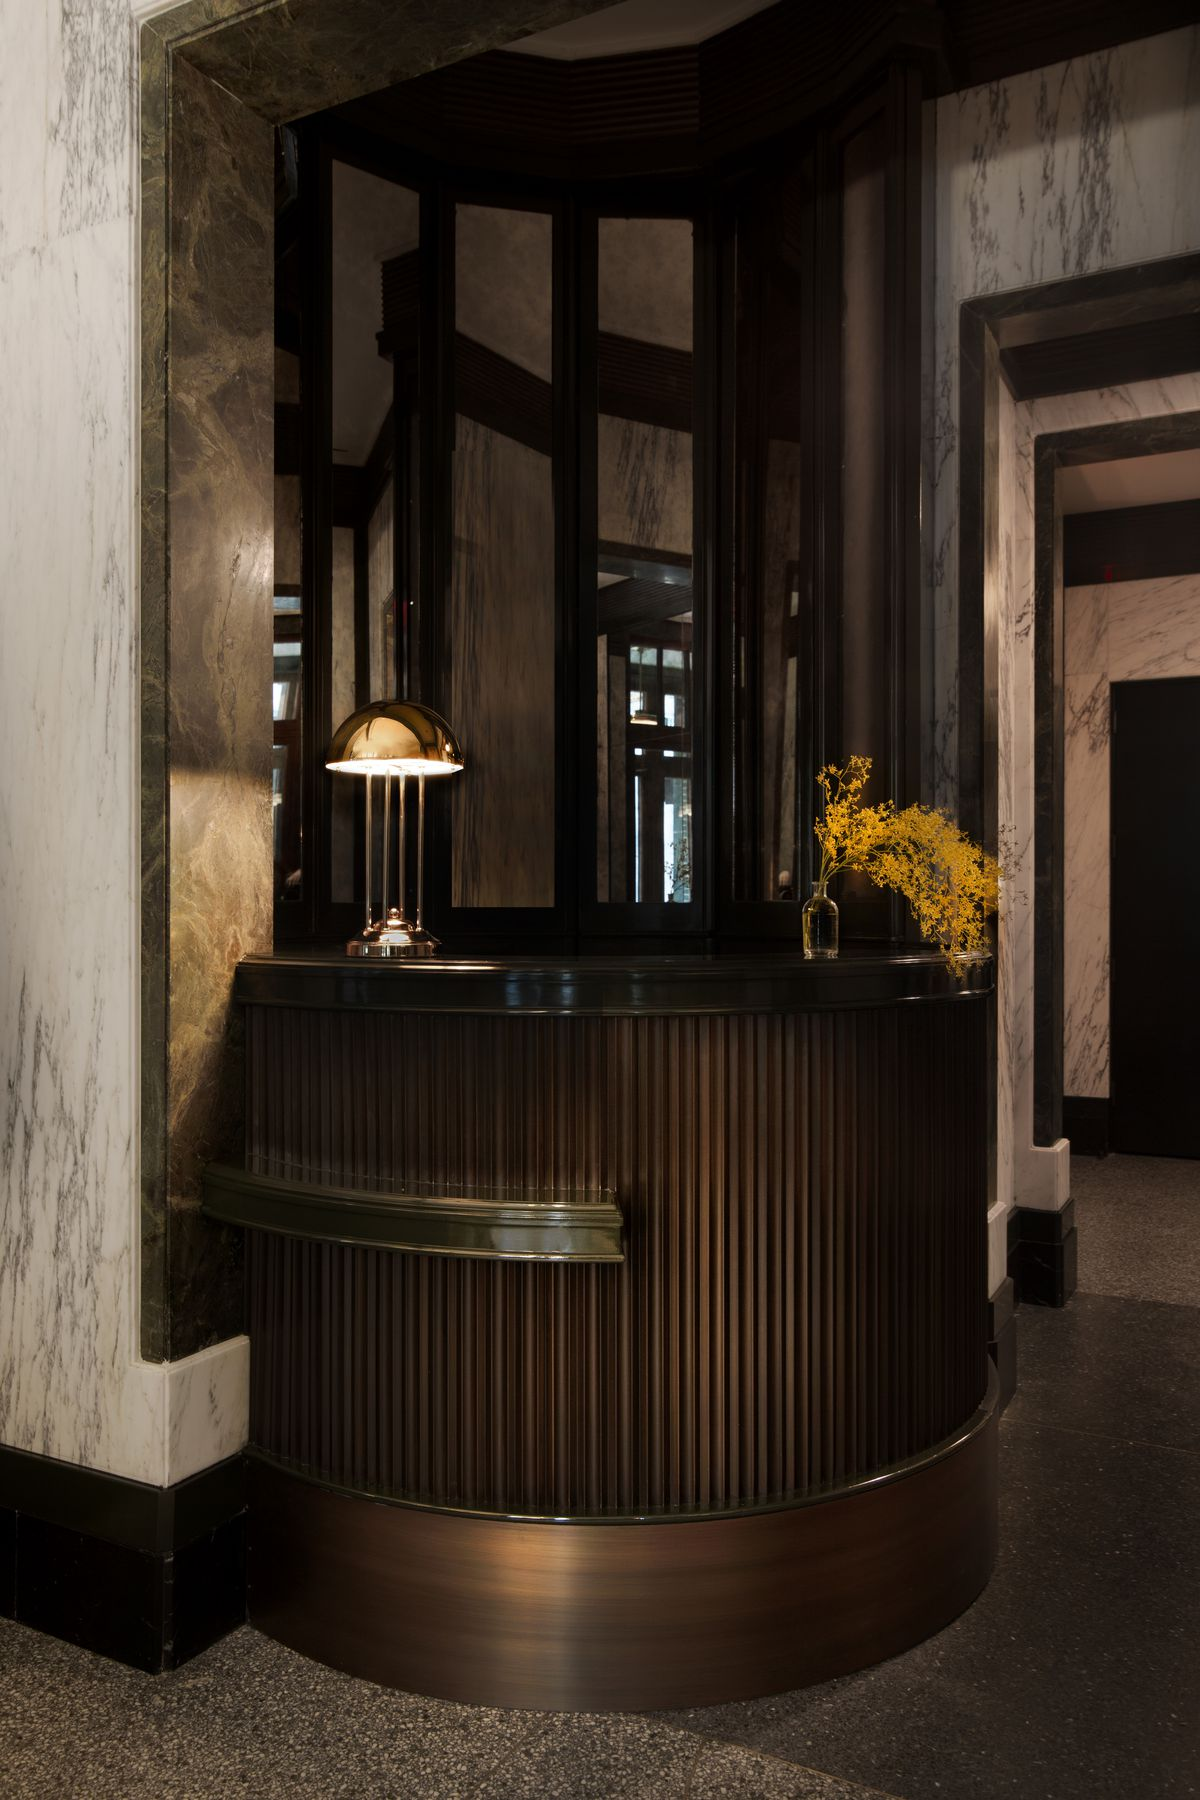 The small, rounded reception desk features a fluted carving.